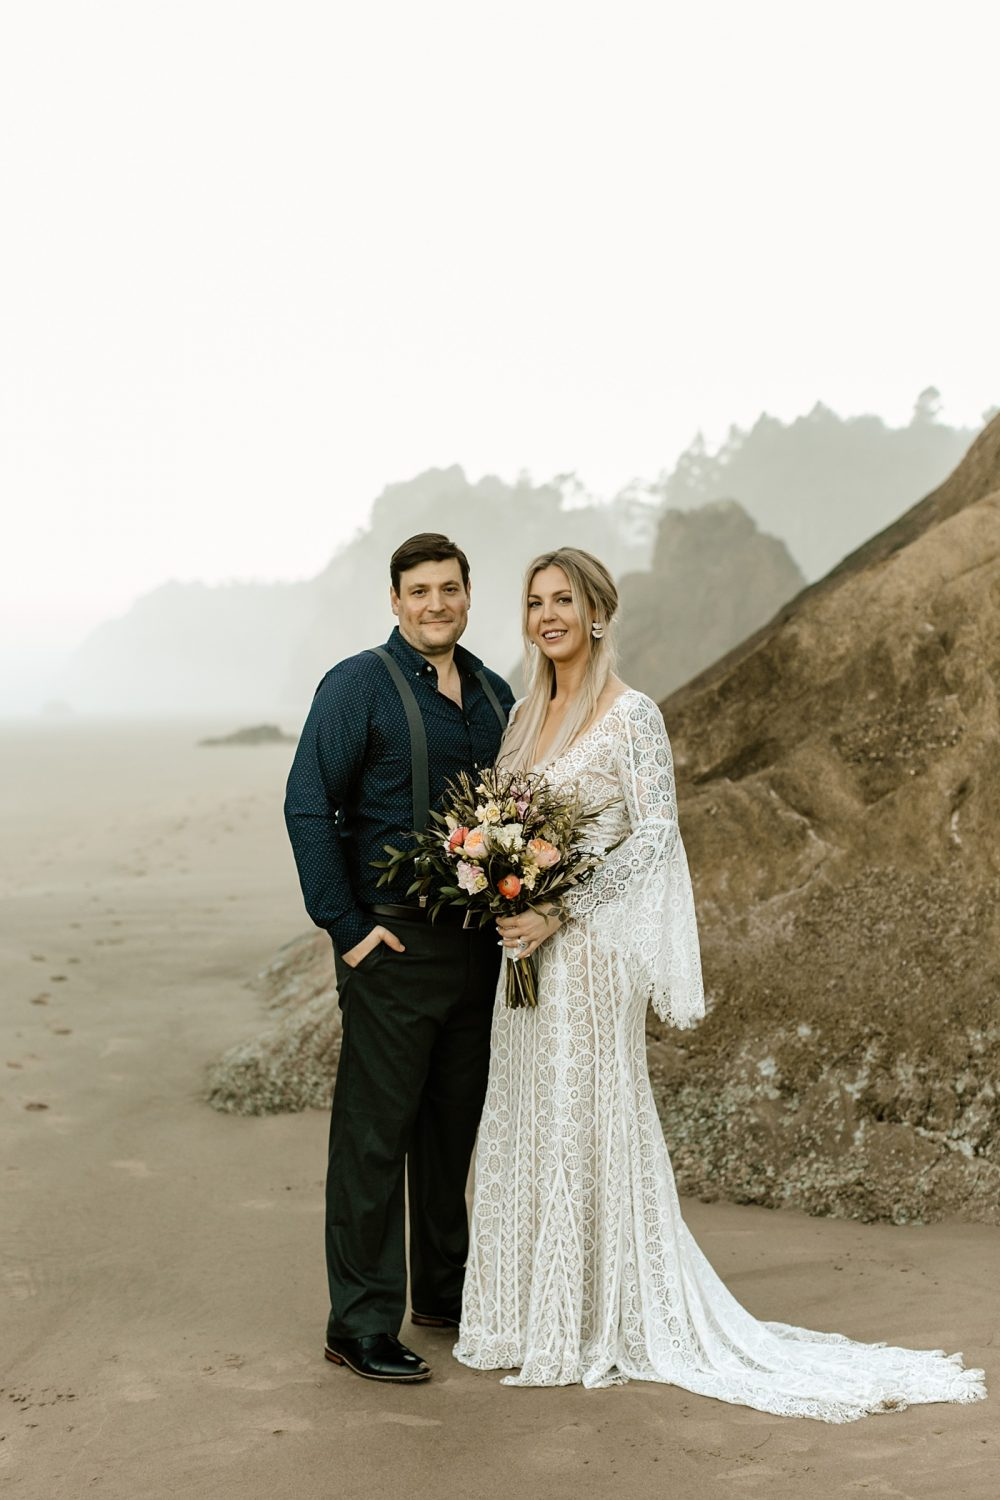 Adelaide dress by Willowby from the local Seattle a&bé bridal shop